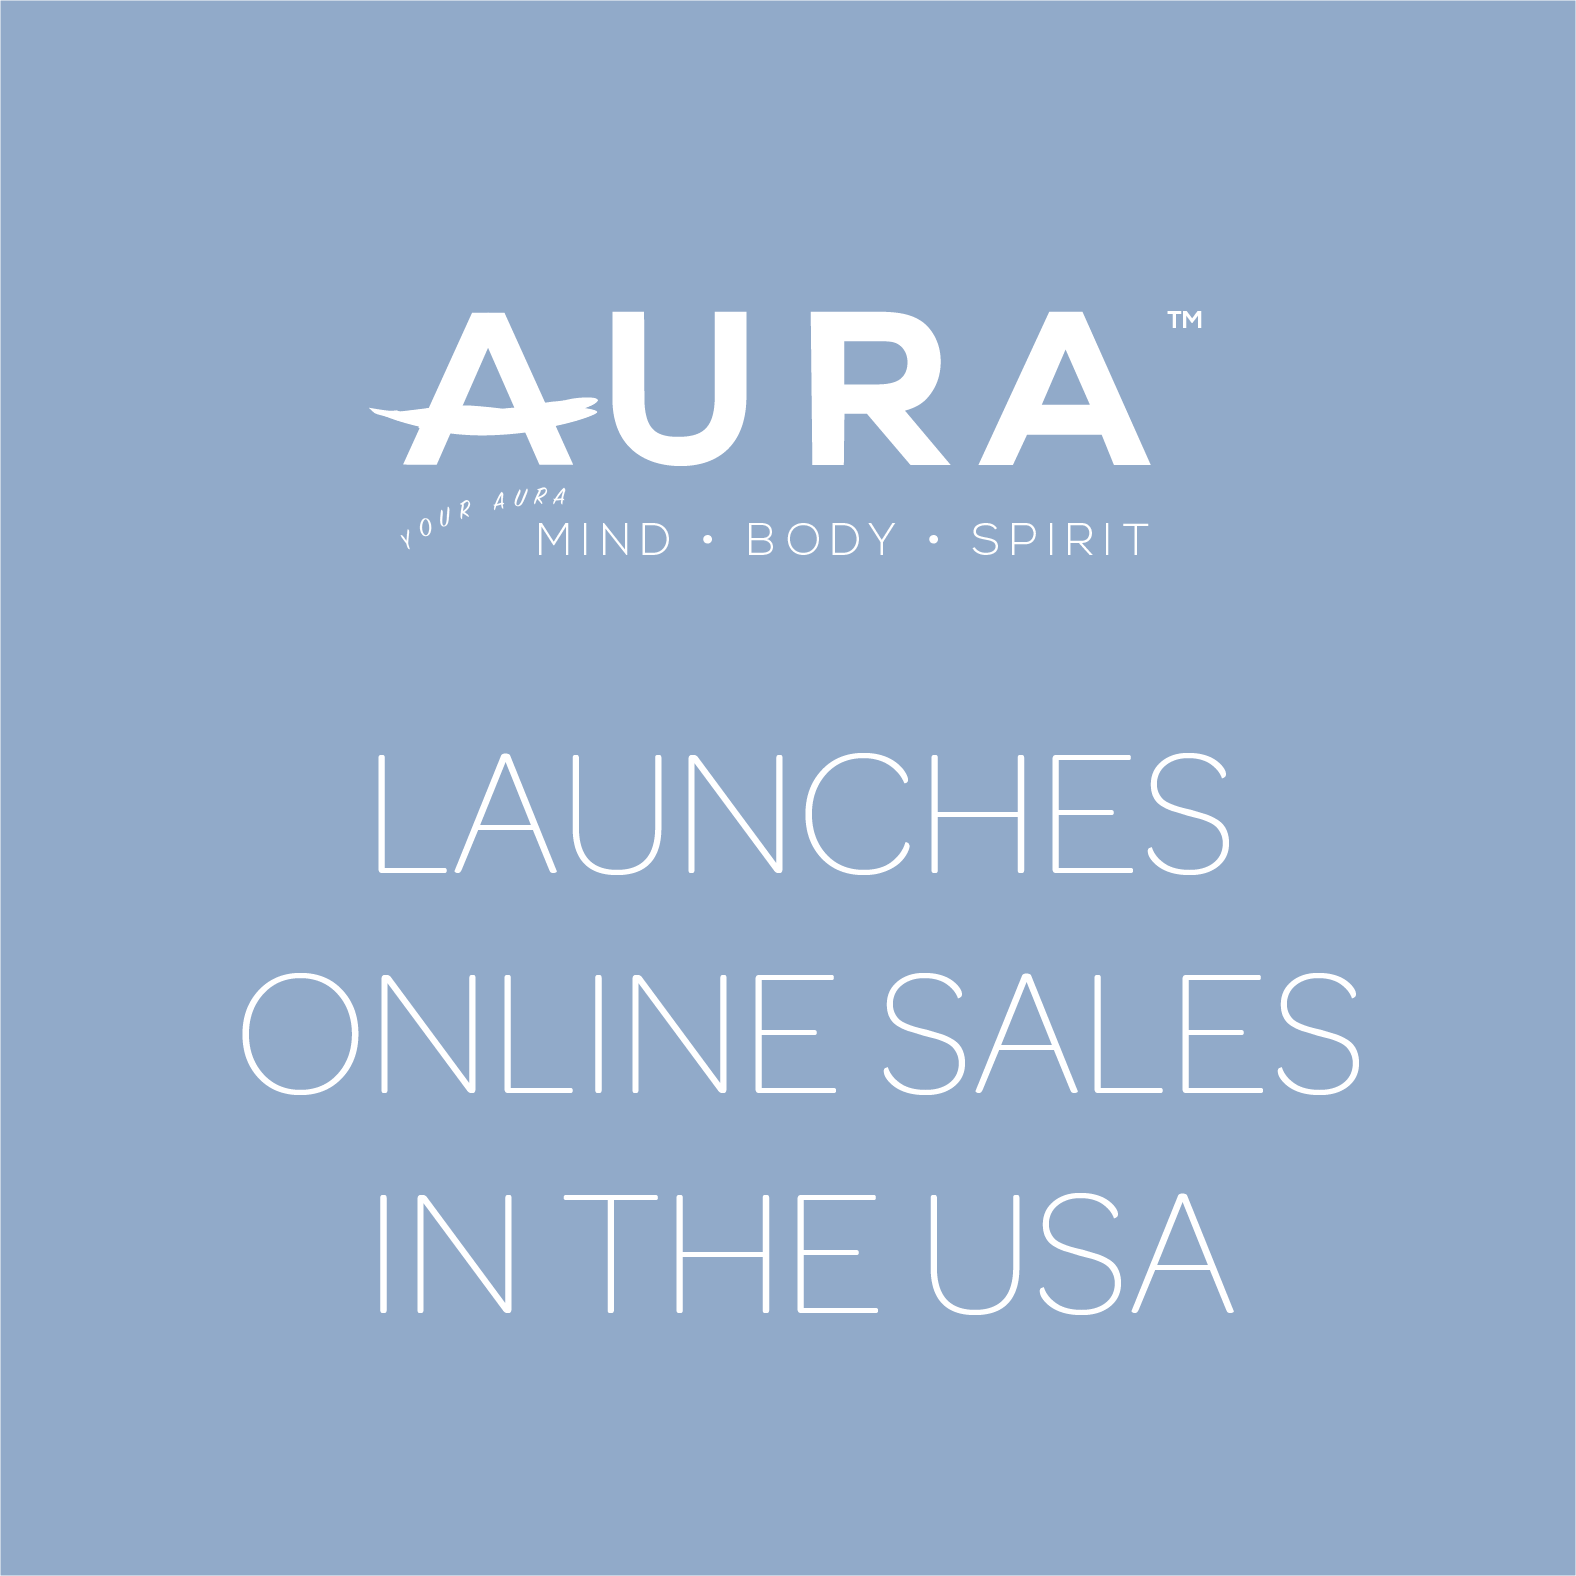 AURA Nutrition Launches Online Sales In The USA